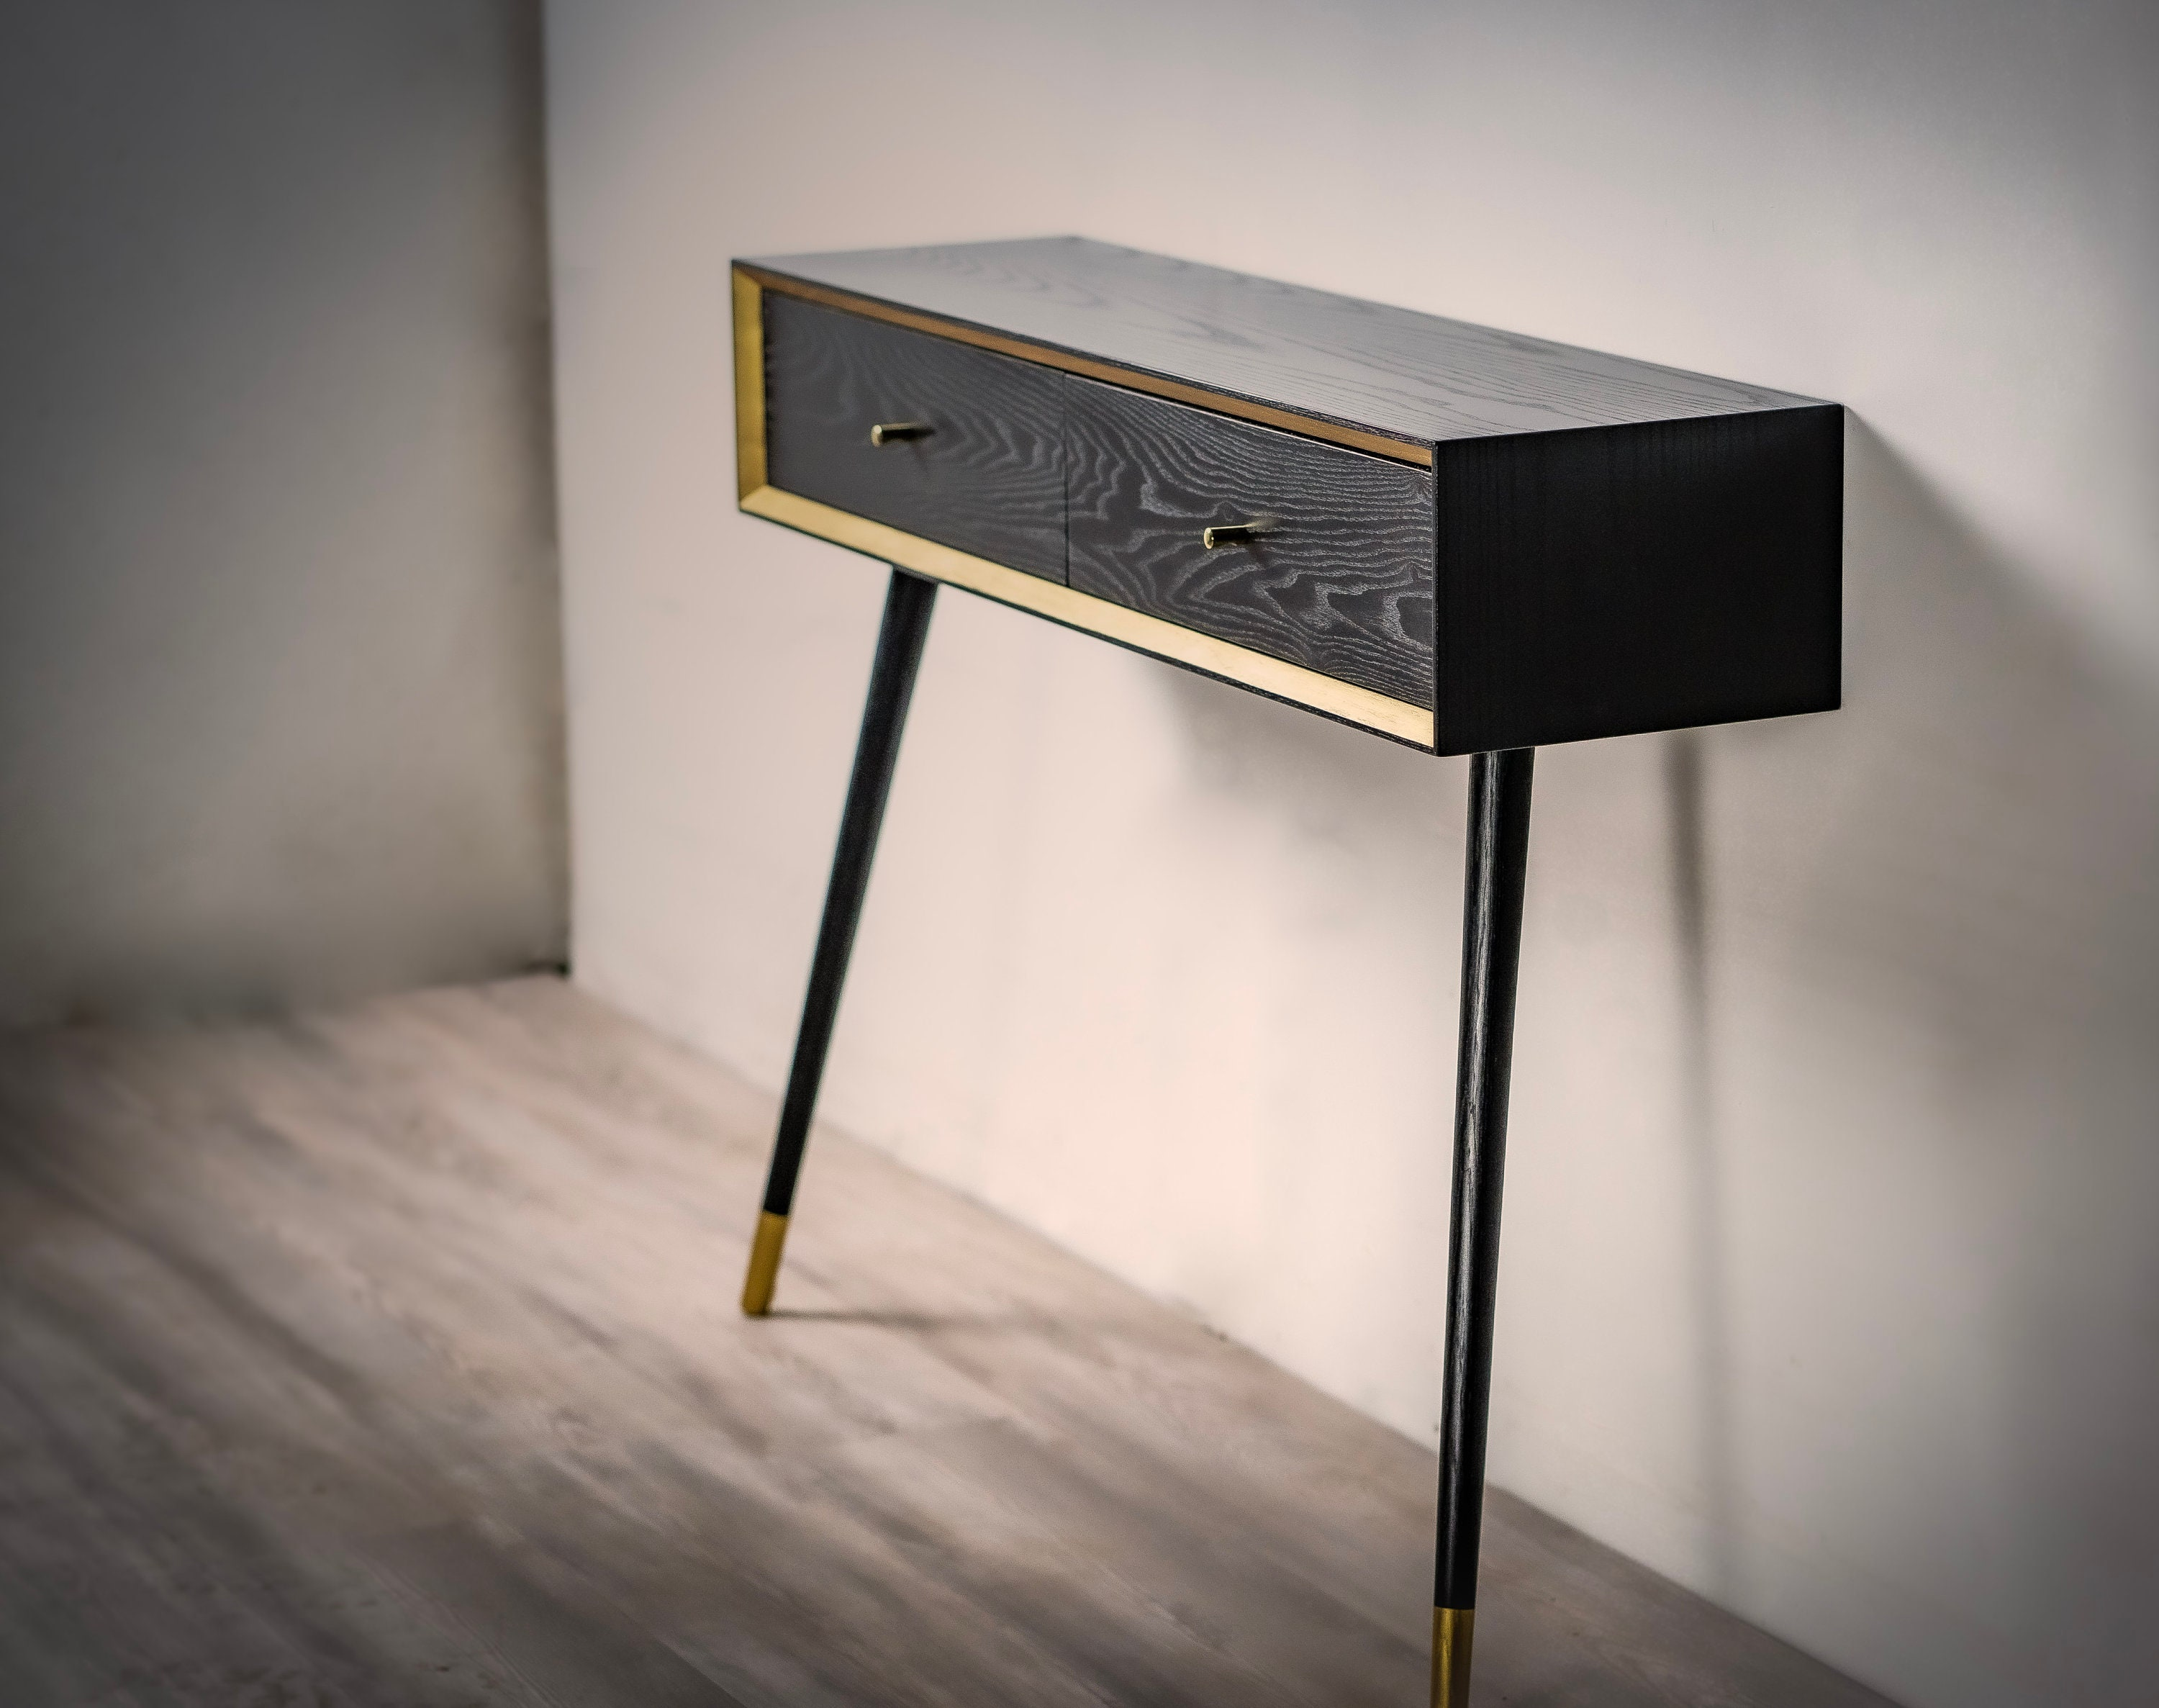 Solid Wood Console Table Entryway Mcm Black And Gold Console Black Ash Mid Century Modern